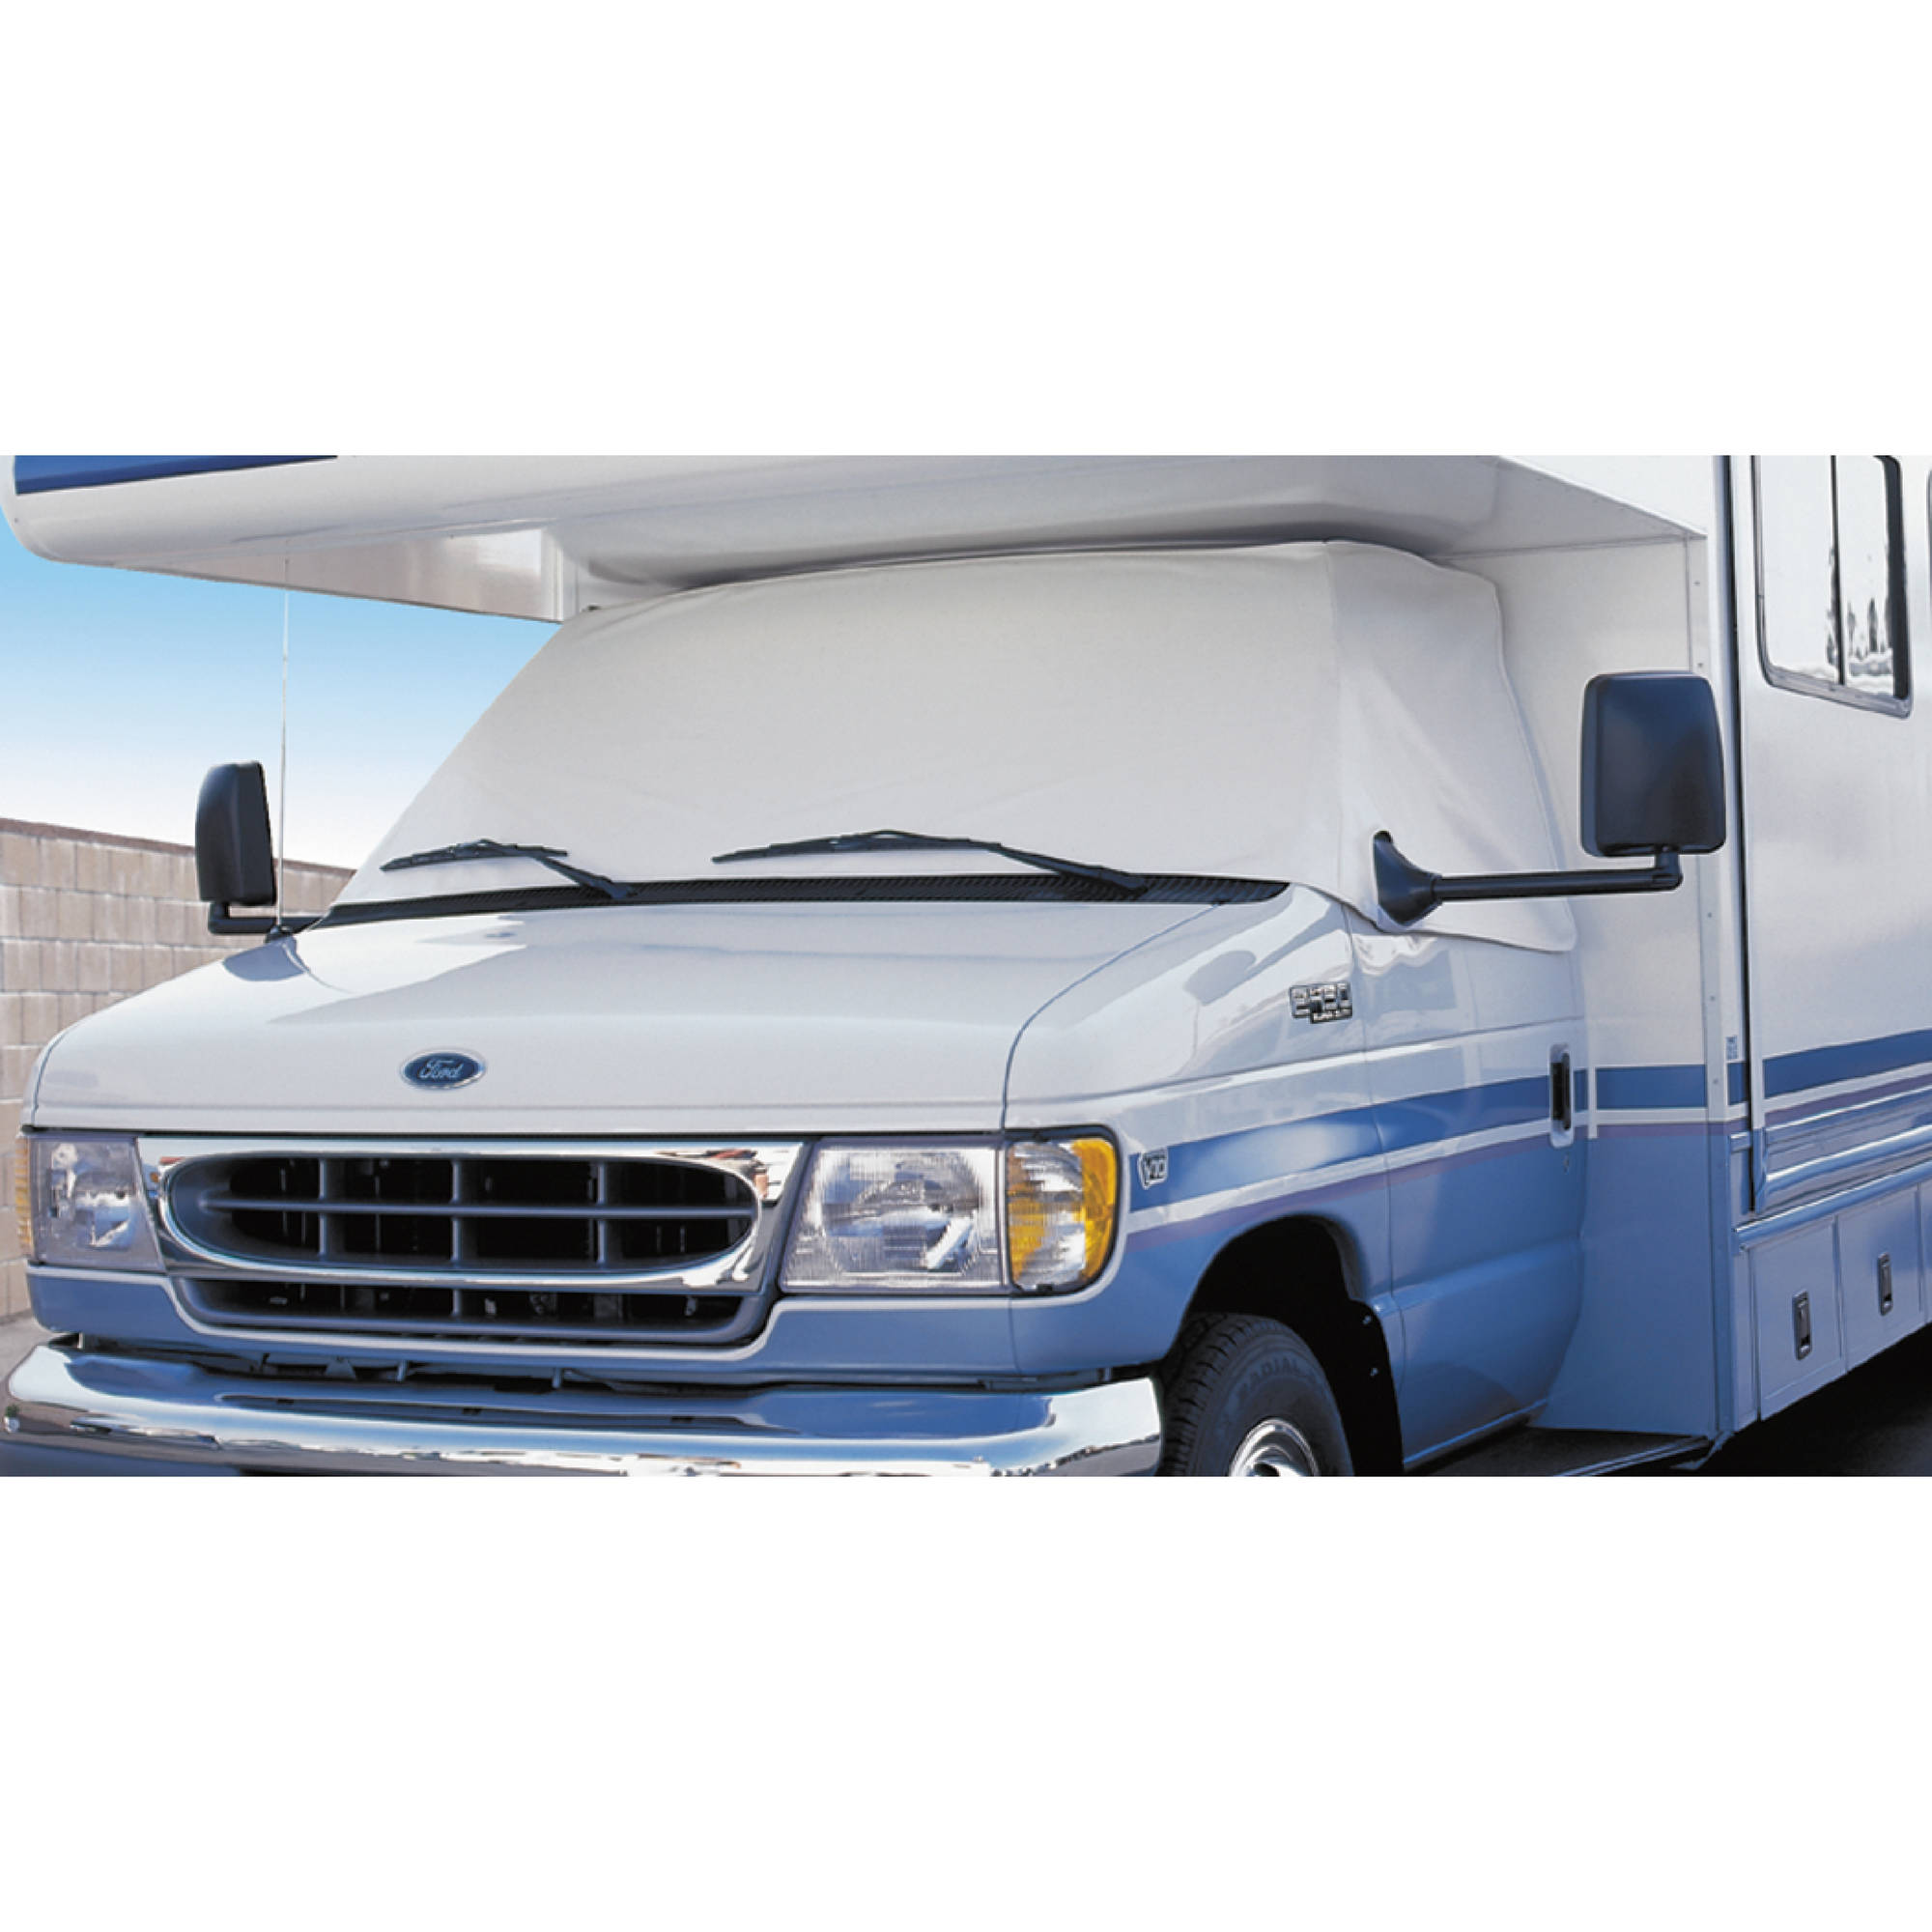 ADCO Class C Windshield Cover For RV, White